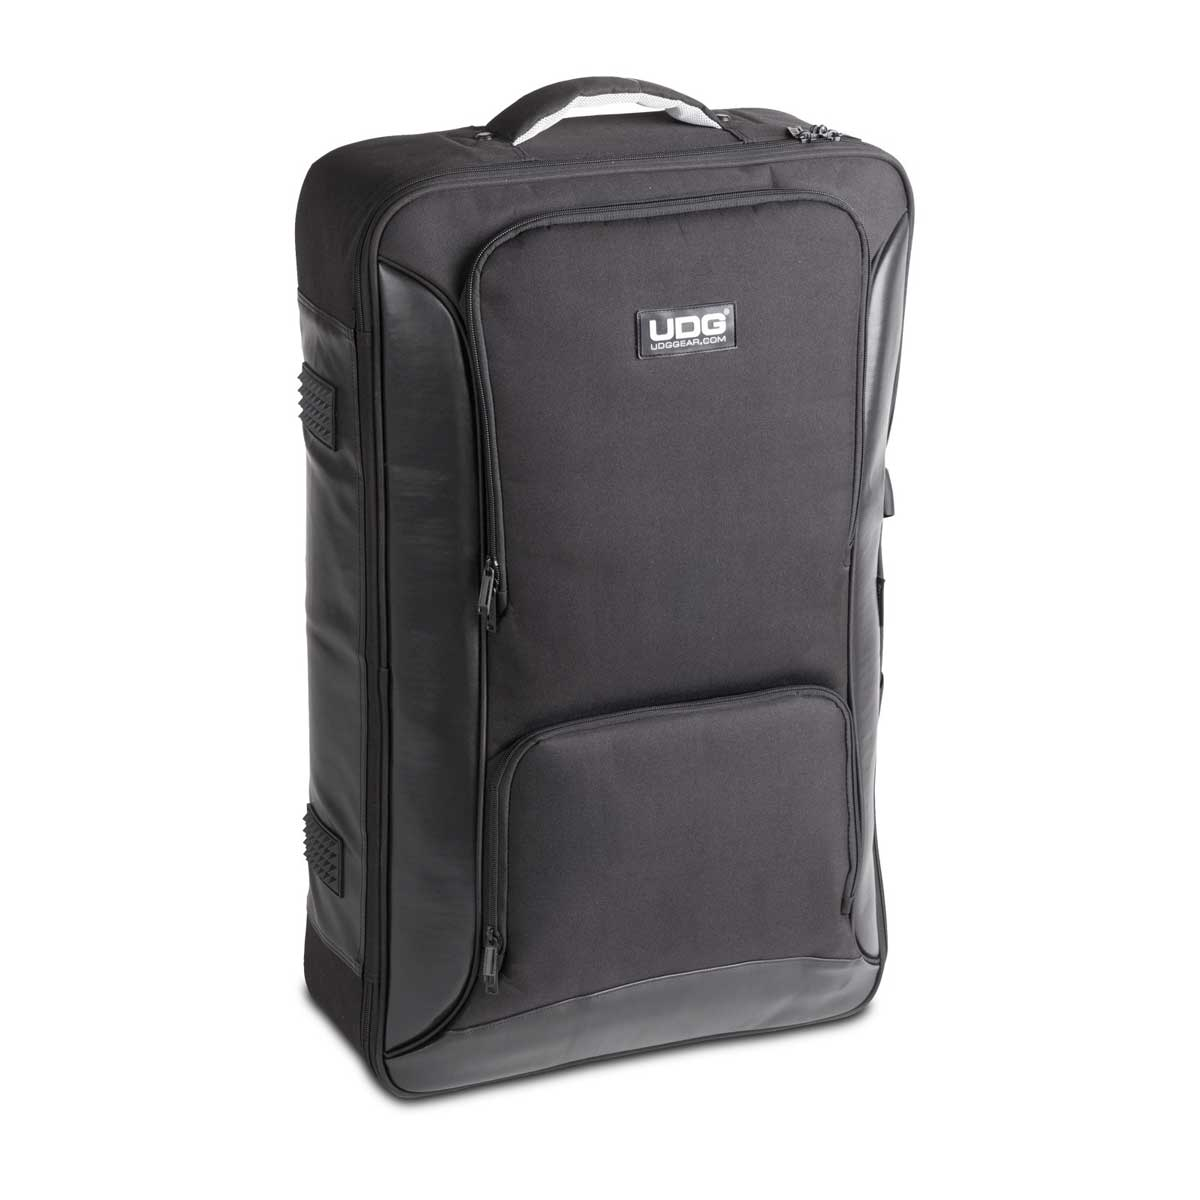 UDG Urbanite MIDI Controller Backpack Grande